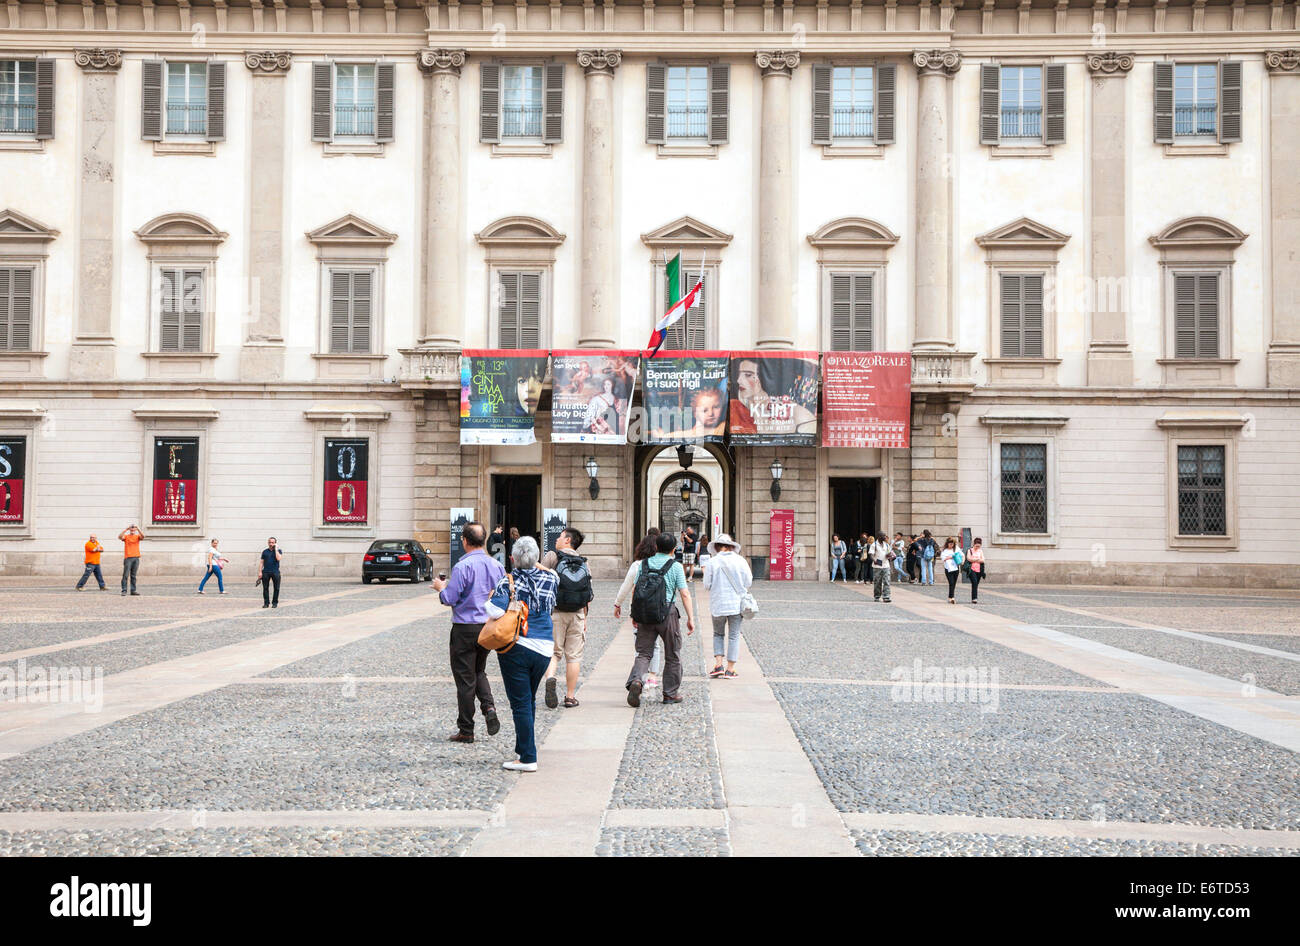 People outside the Palazzo Reale beside the duomo in Milan, Italy - Stock Image